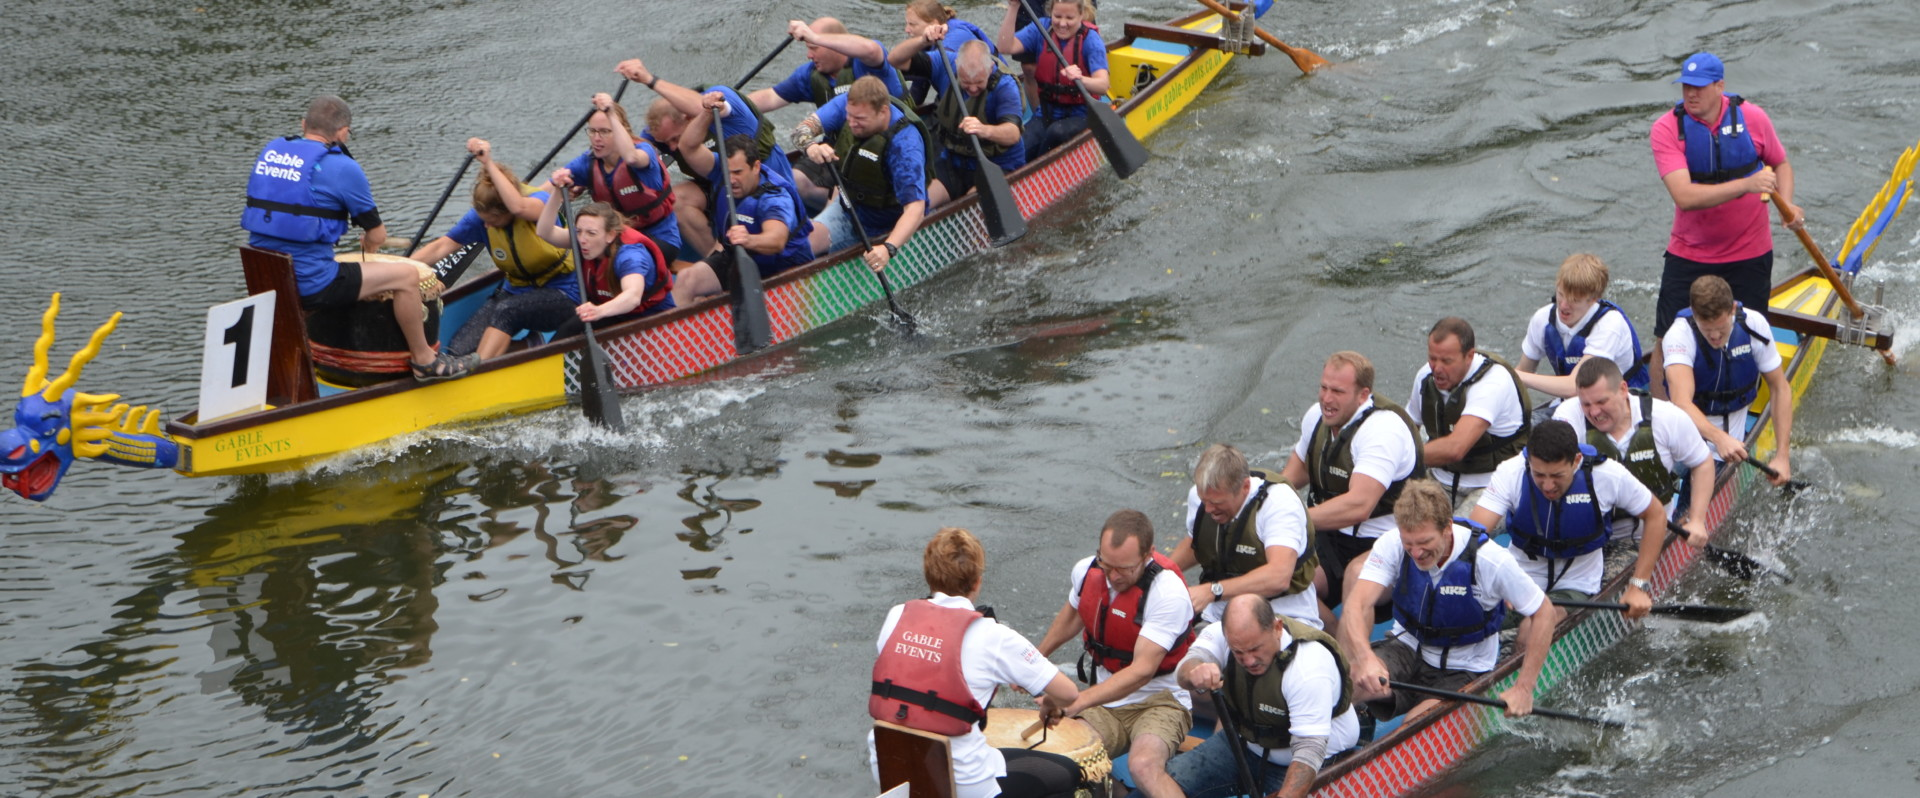 Two groups of people in dragon boats on the river